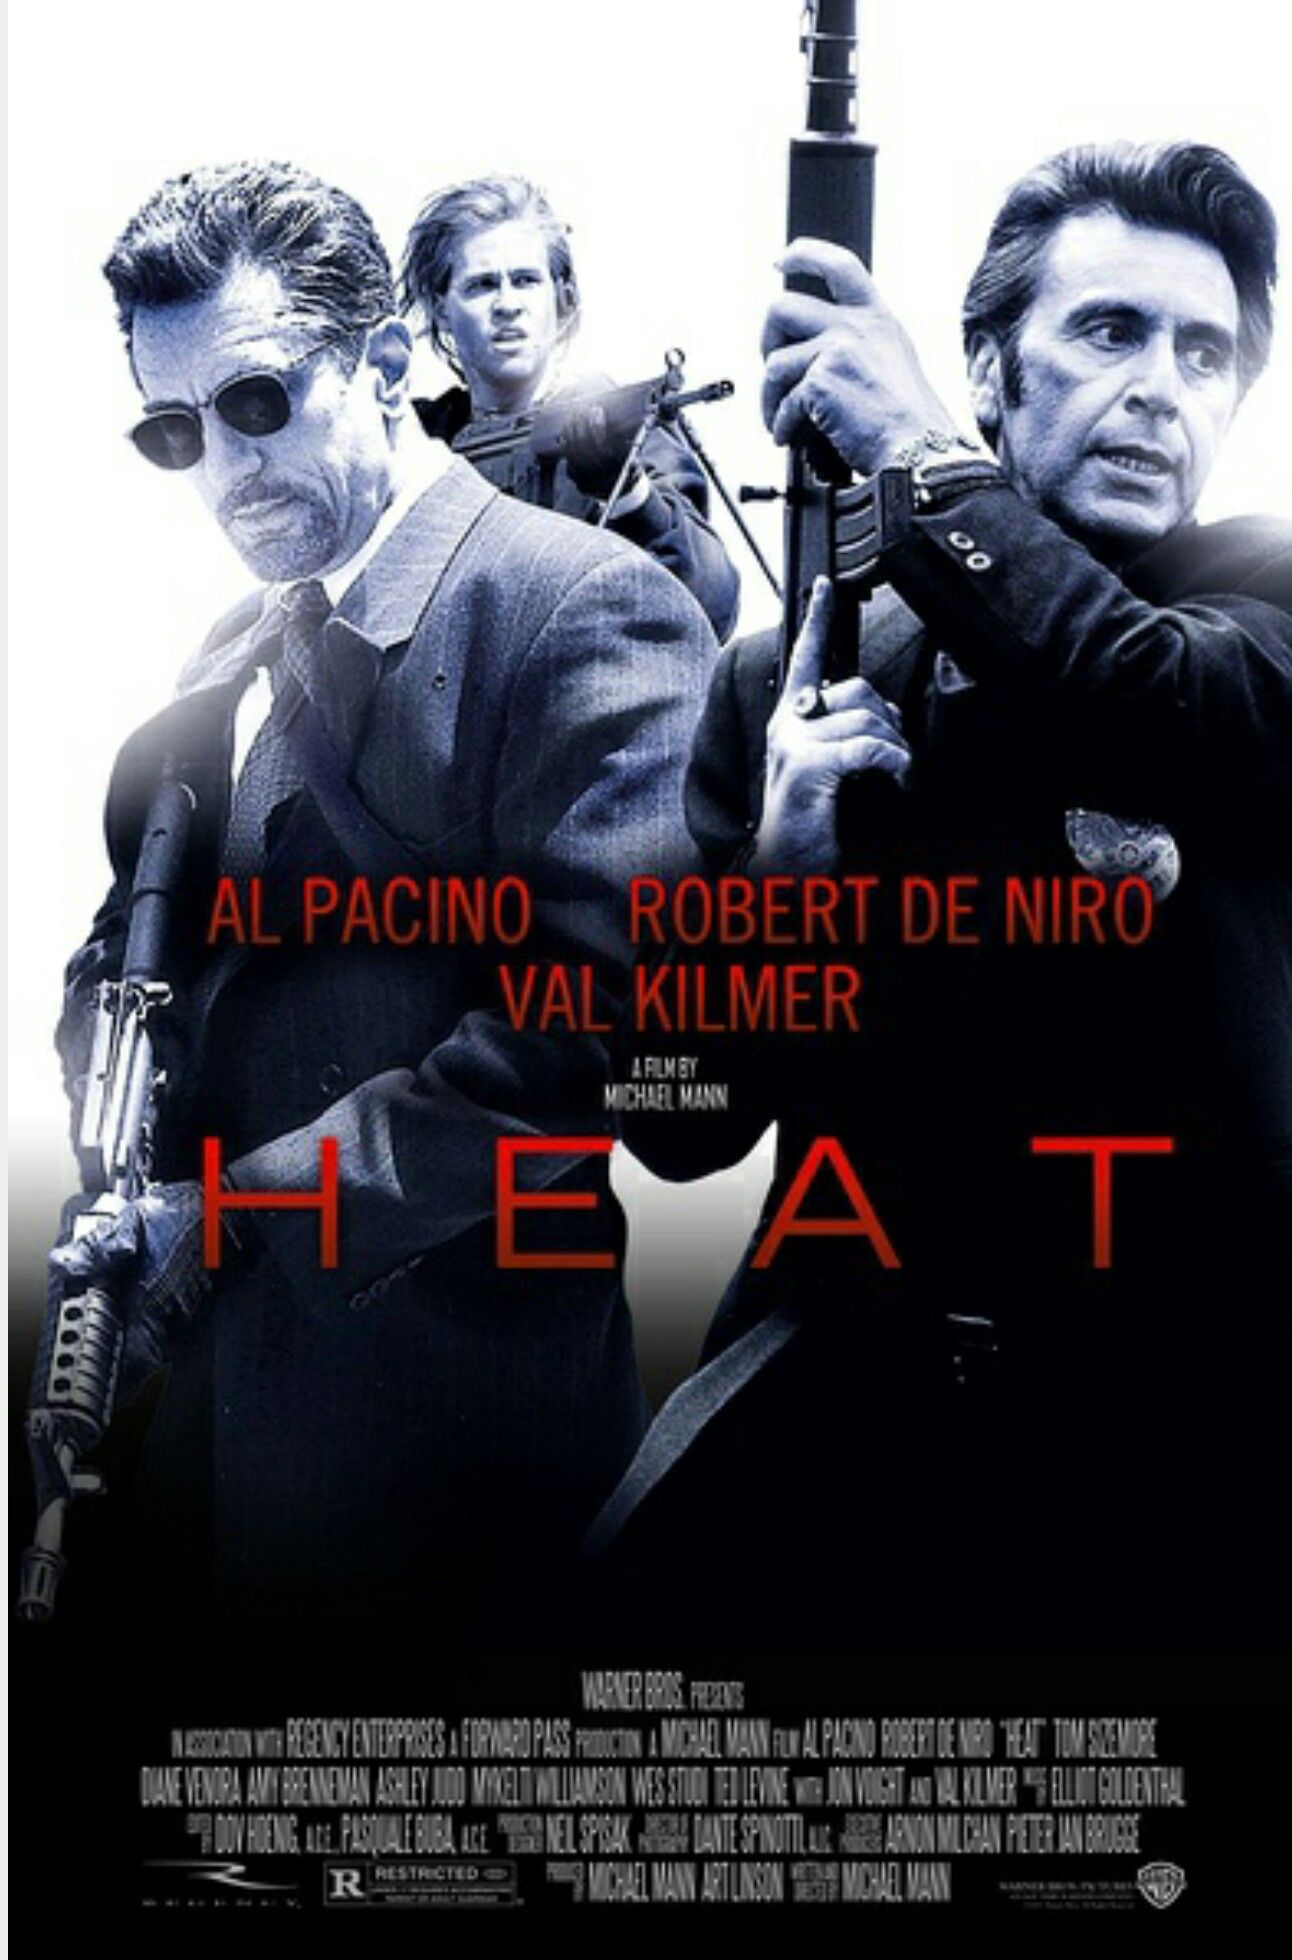 Pin By Anthony P On Movies Film Choices Heat Movie Film